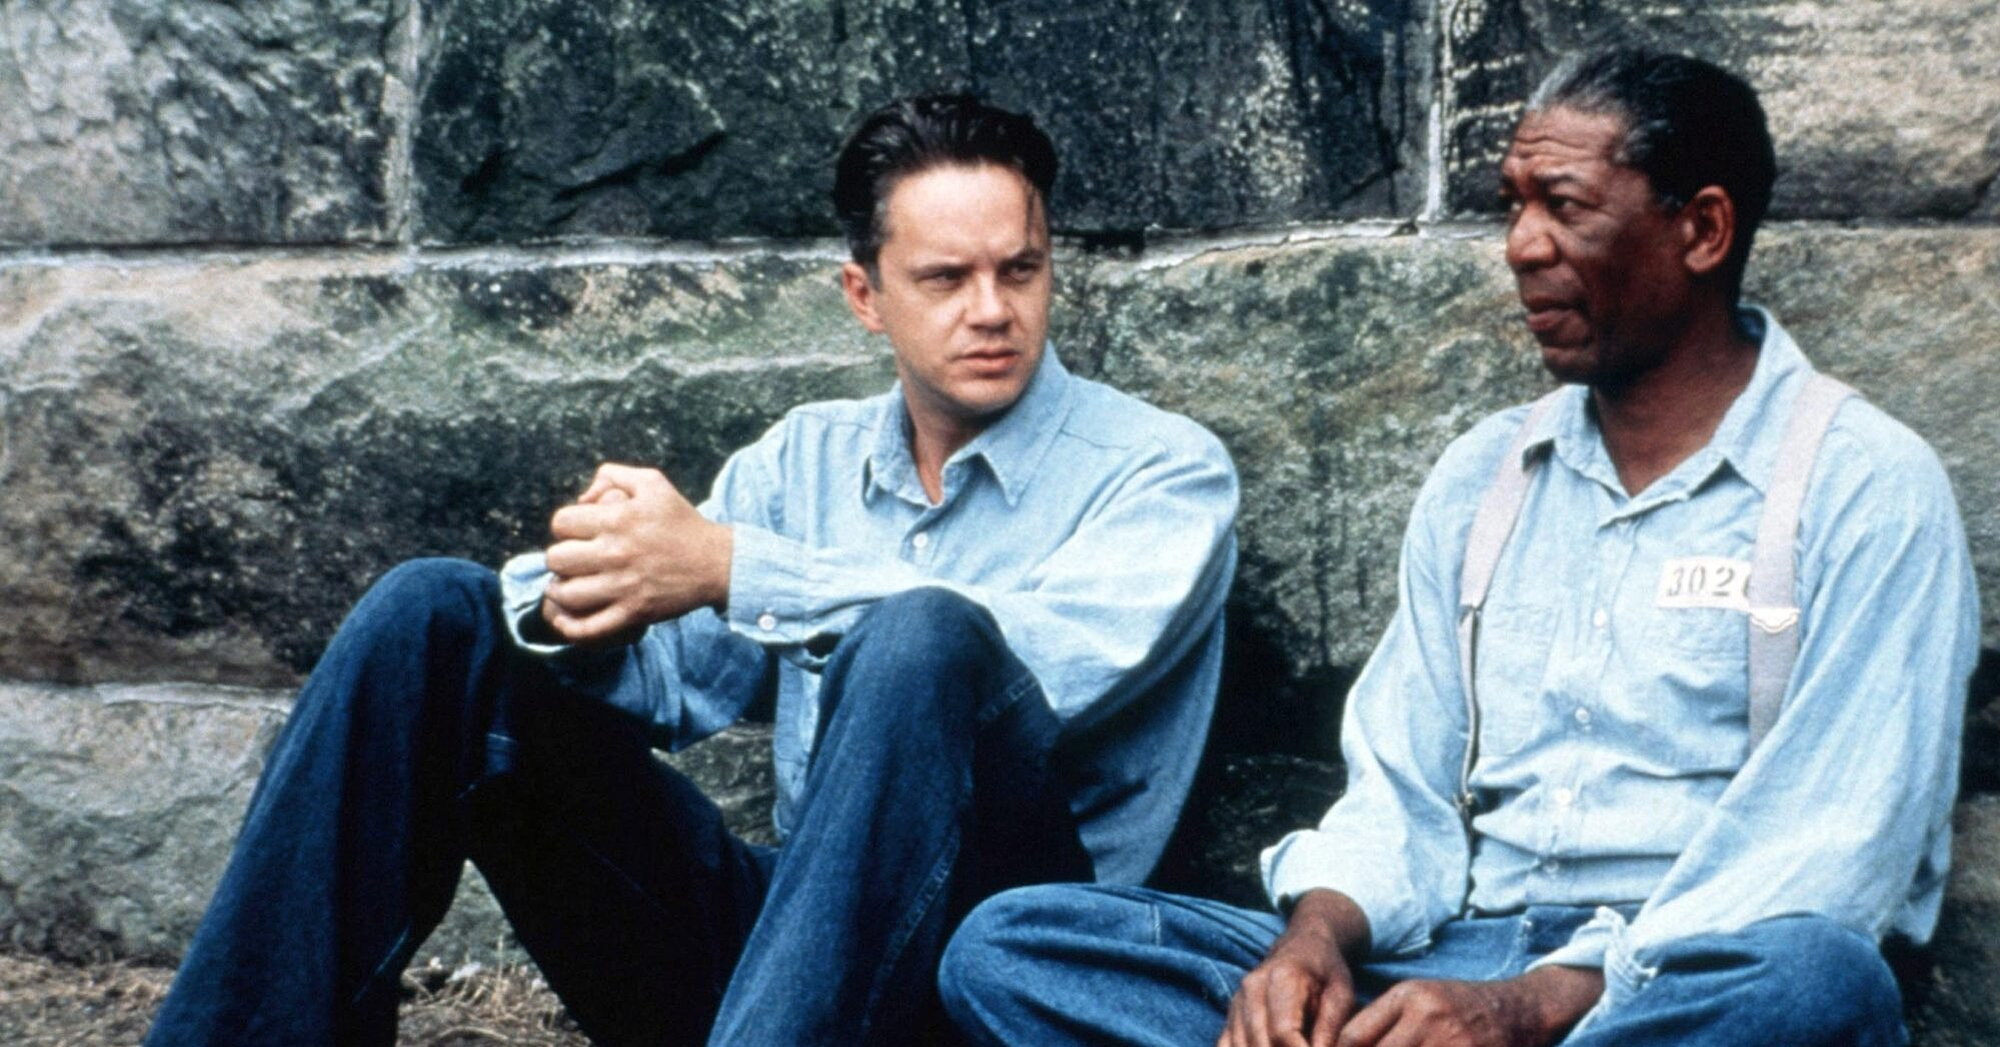 The Shawshank Redemption returning to theaters for 25th anniversary | EW.com